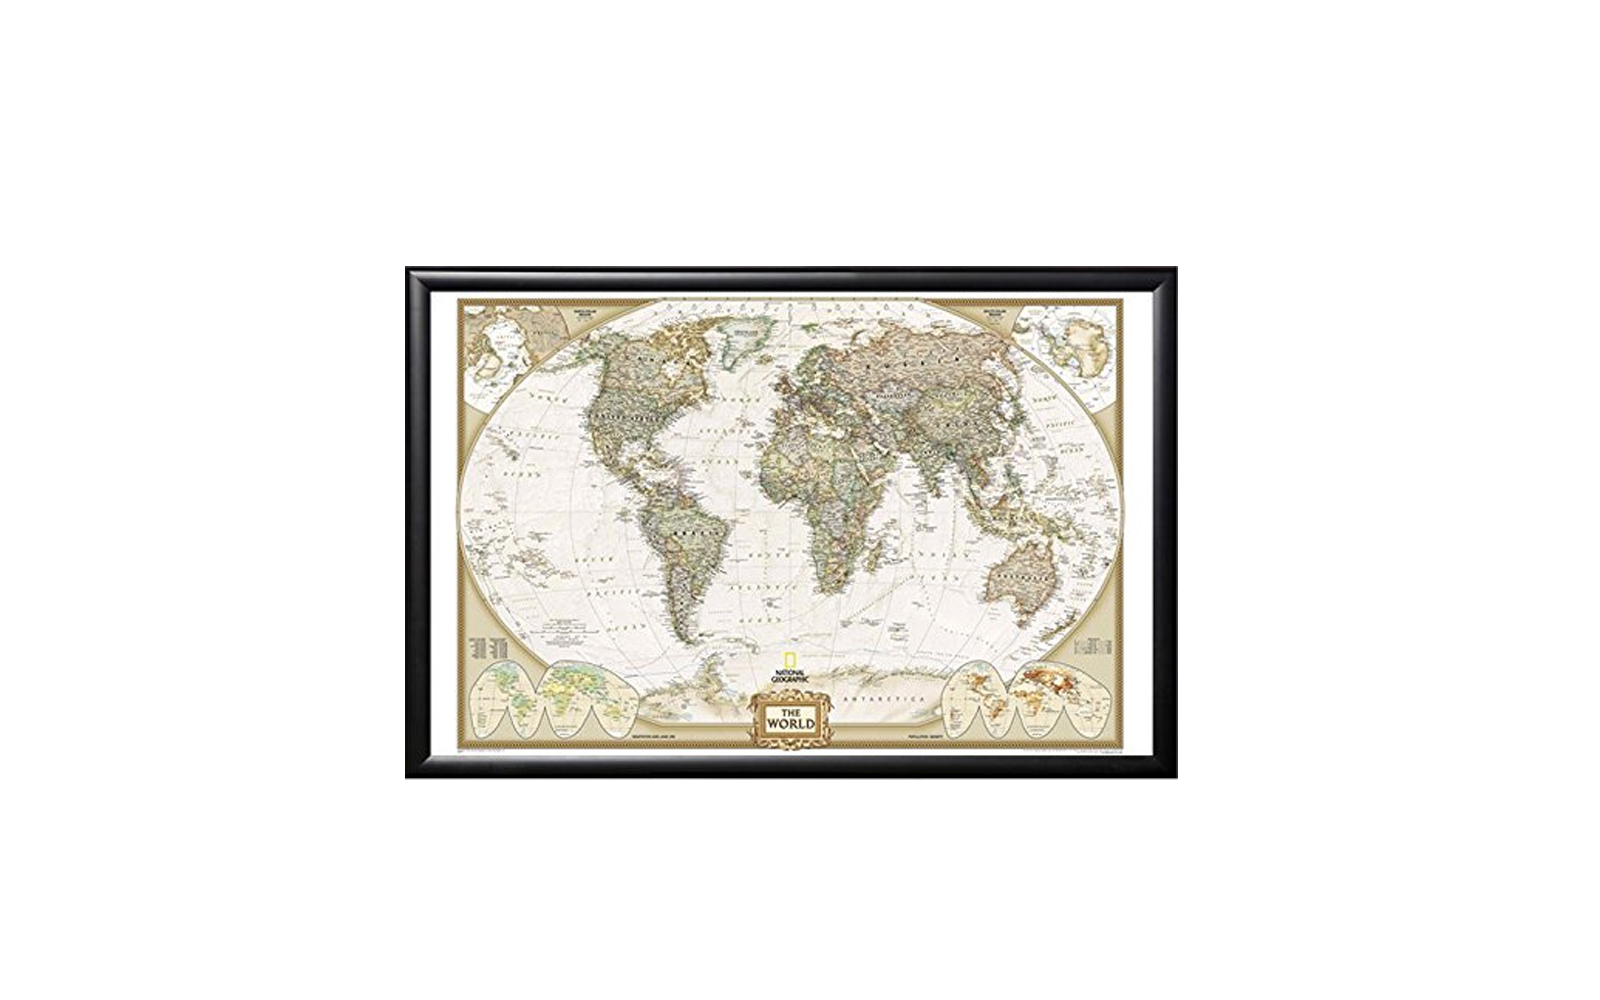 Framed National Geographic World Map with Push Pins